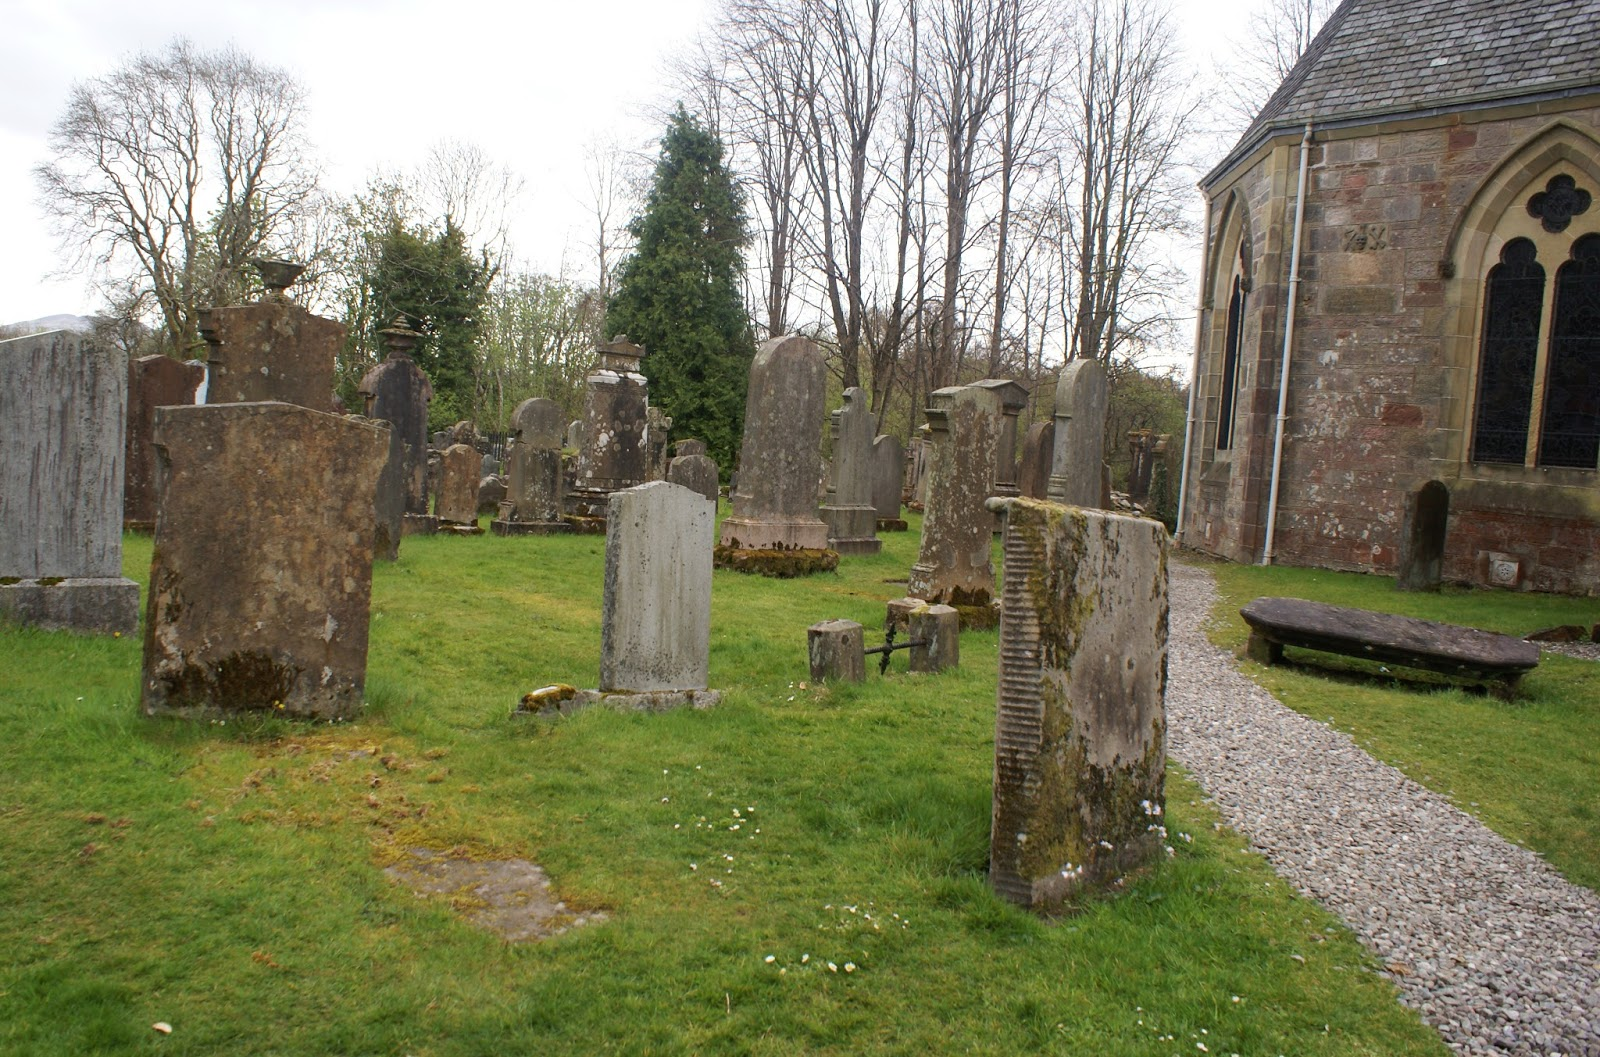 luss church graveyard cemetary loch lomond scotland uk